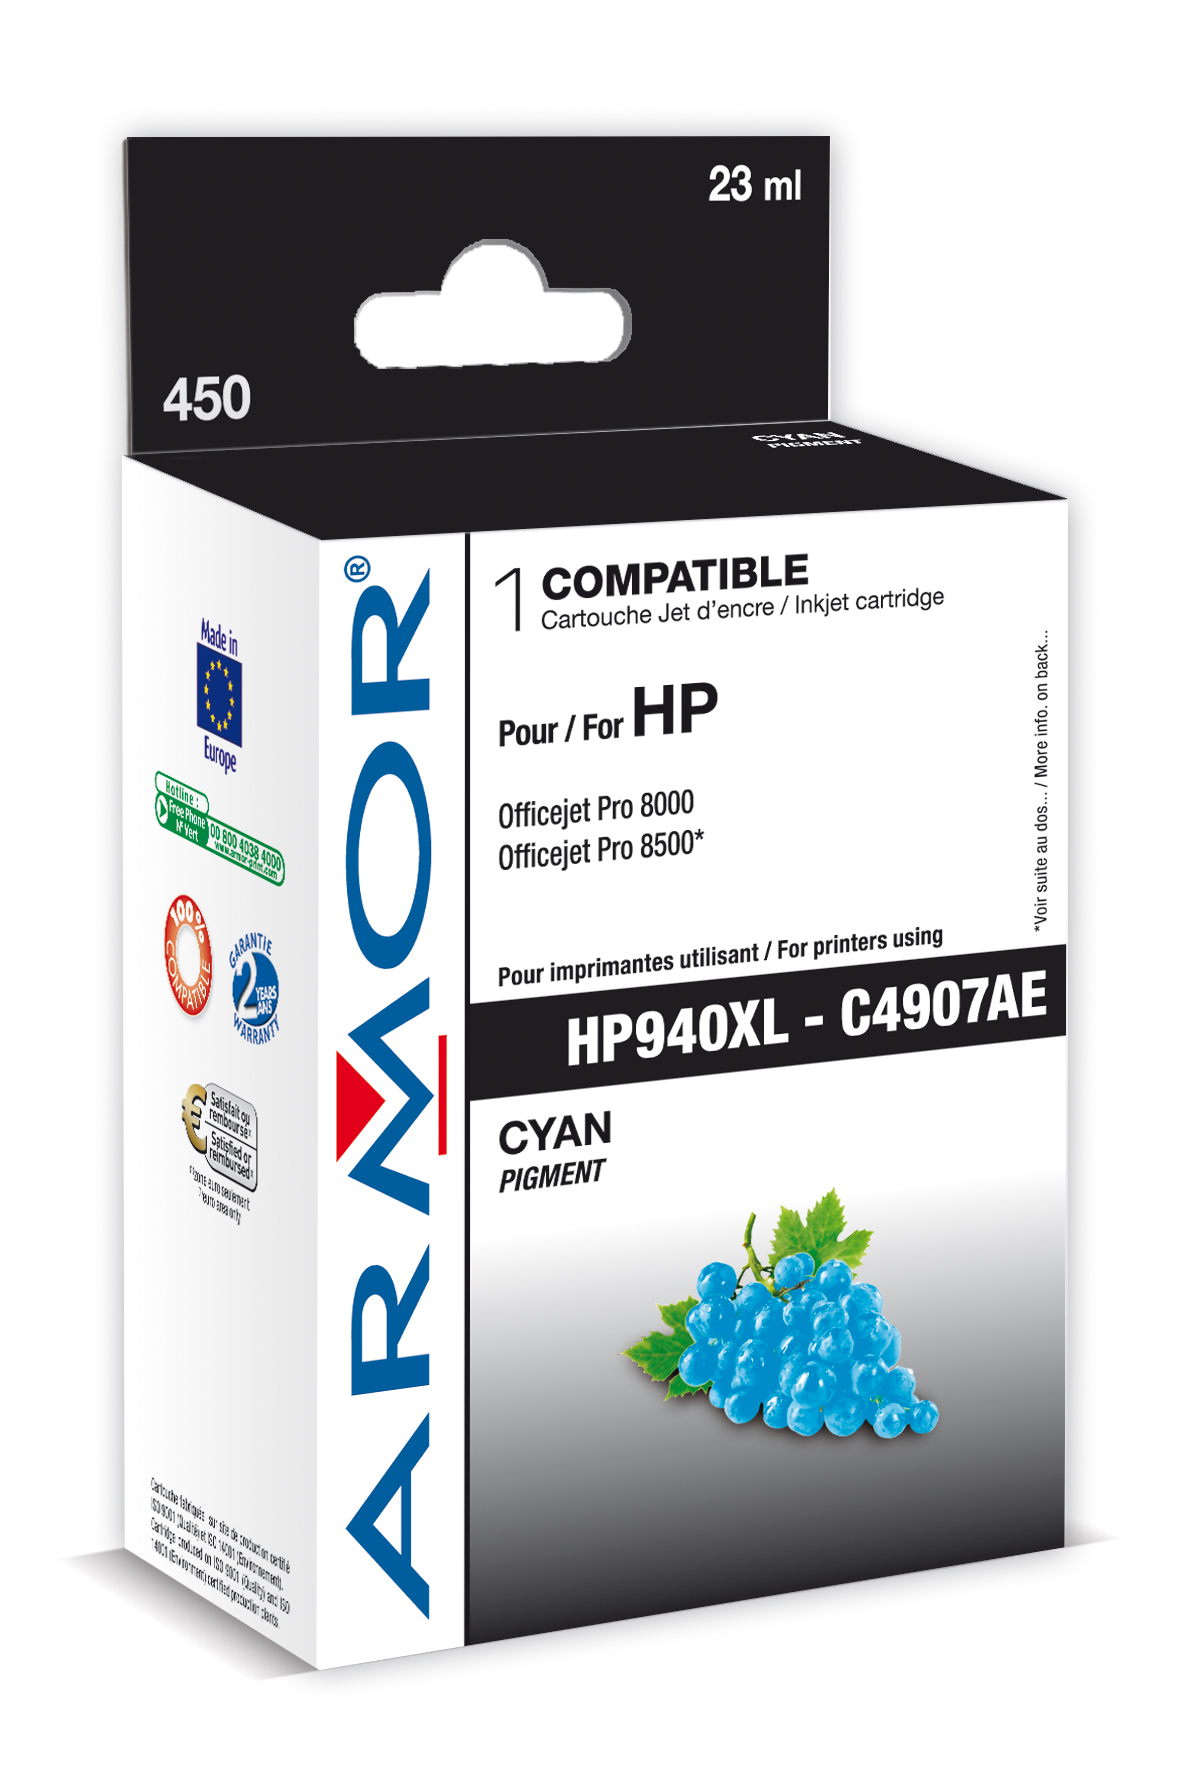 Armor ink-jet pro HP Pro 8000/8500,Chip,24 ml C